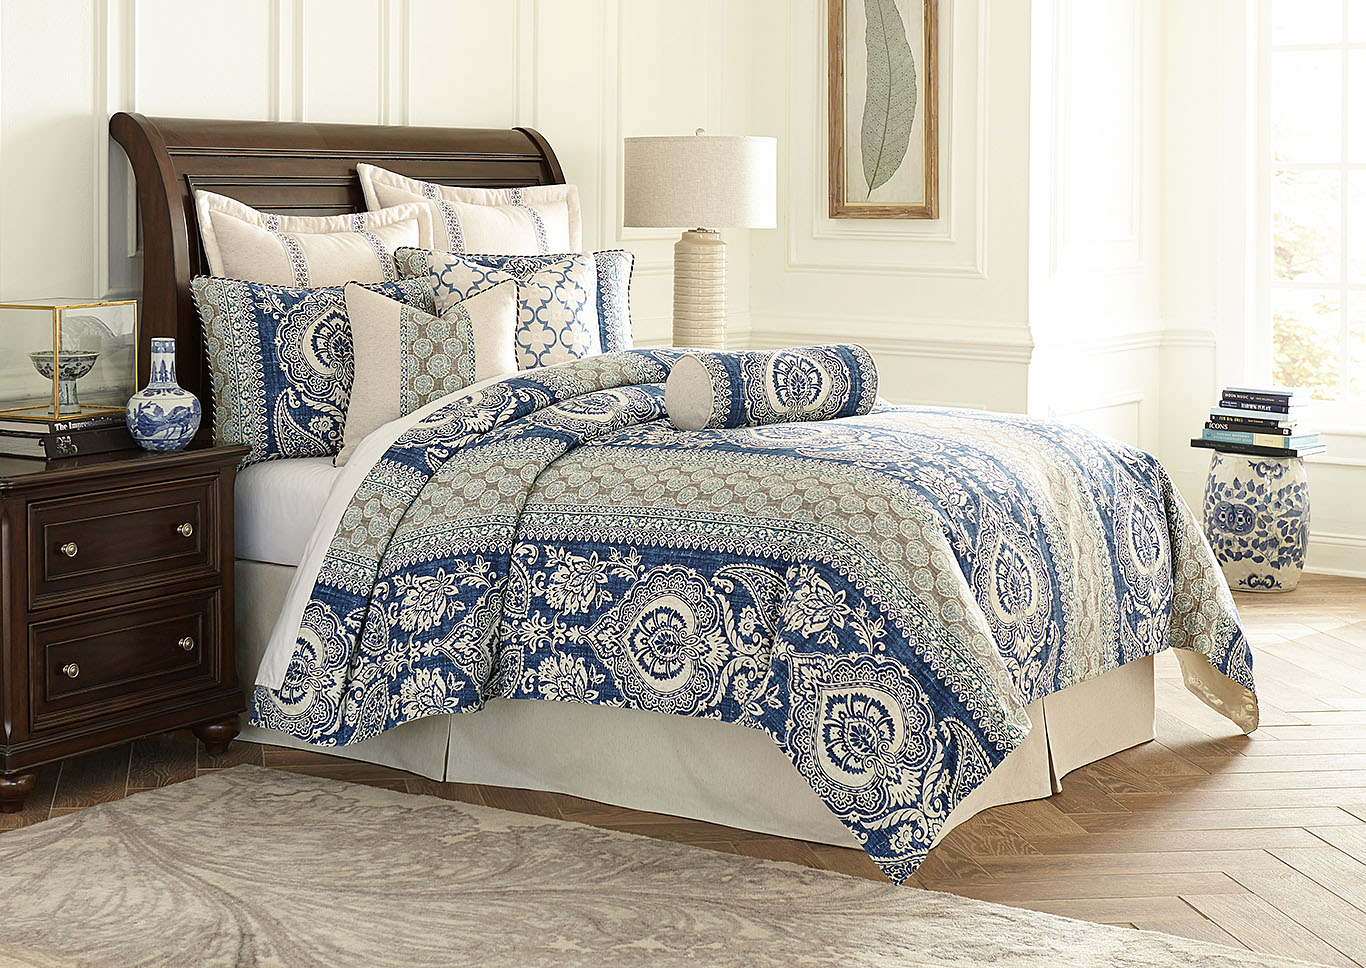 La Rochelle Cadet 9 pc. Queen Comforter Set,AICO